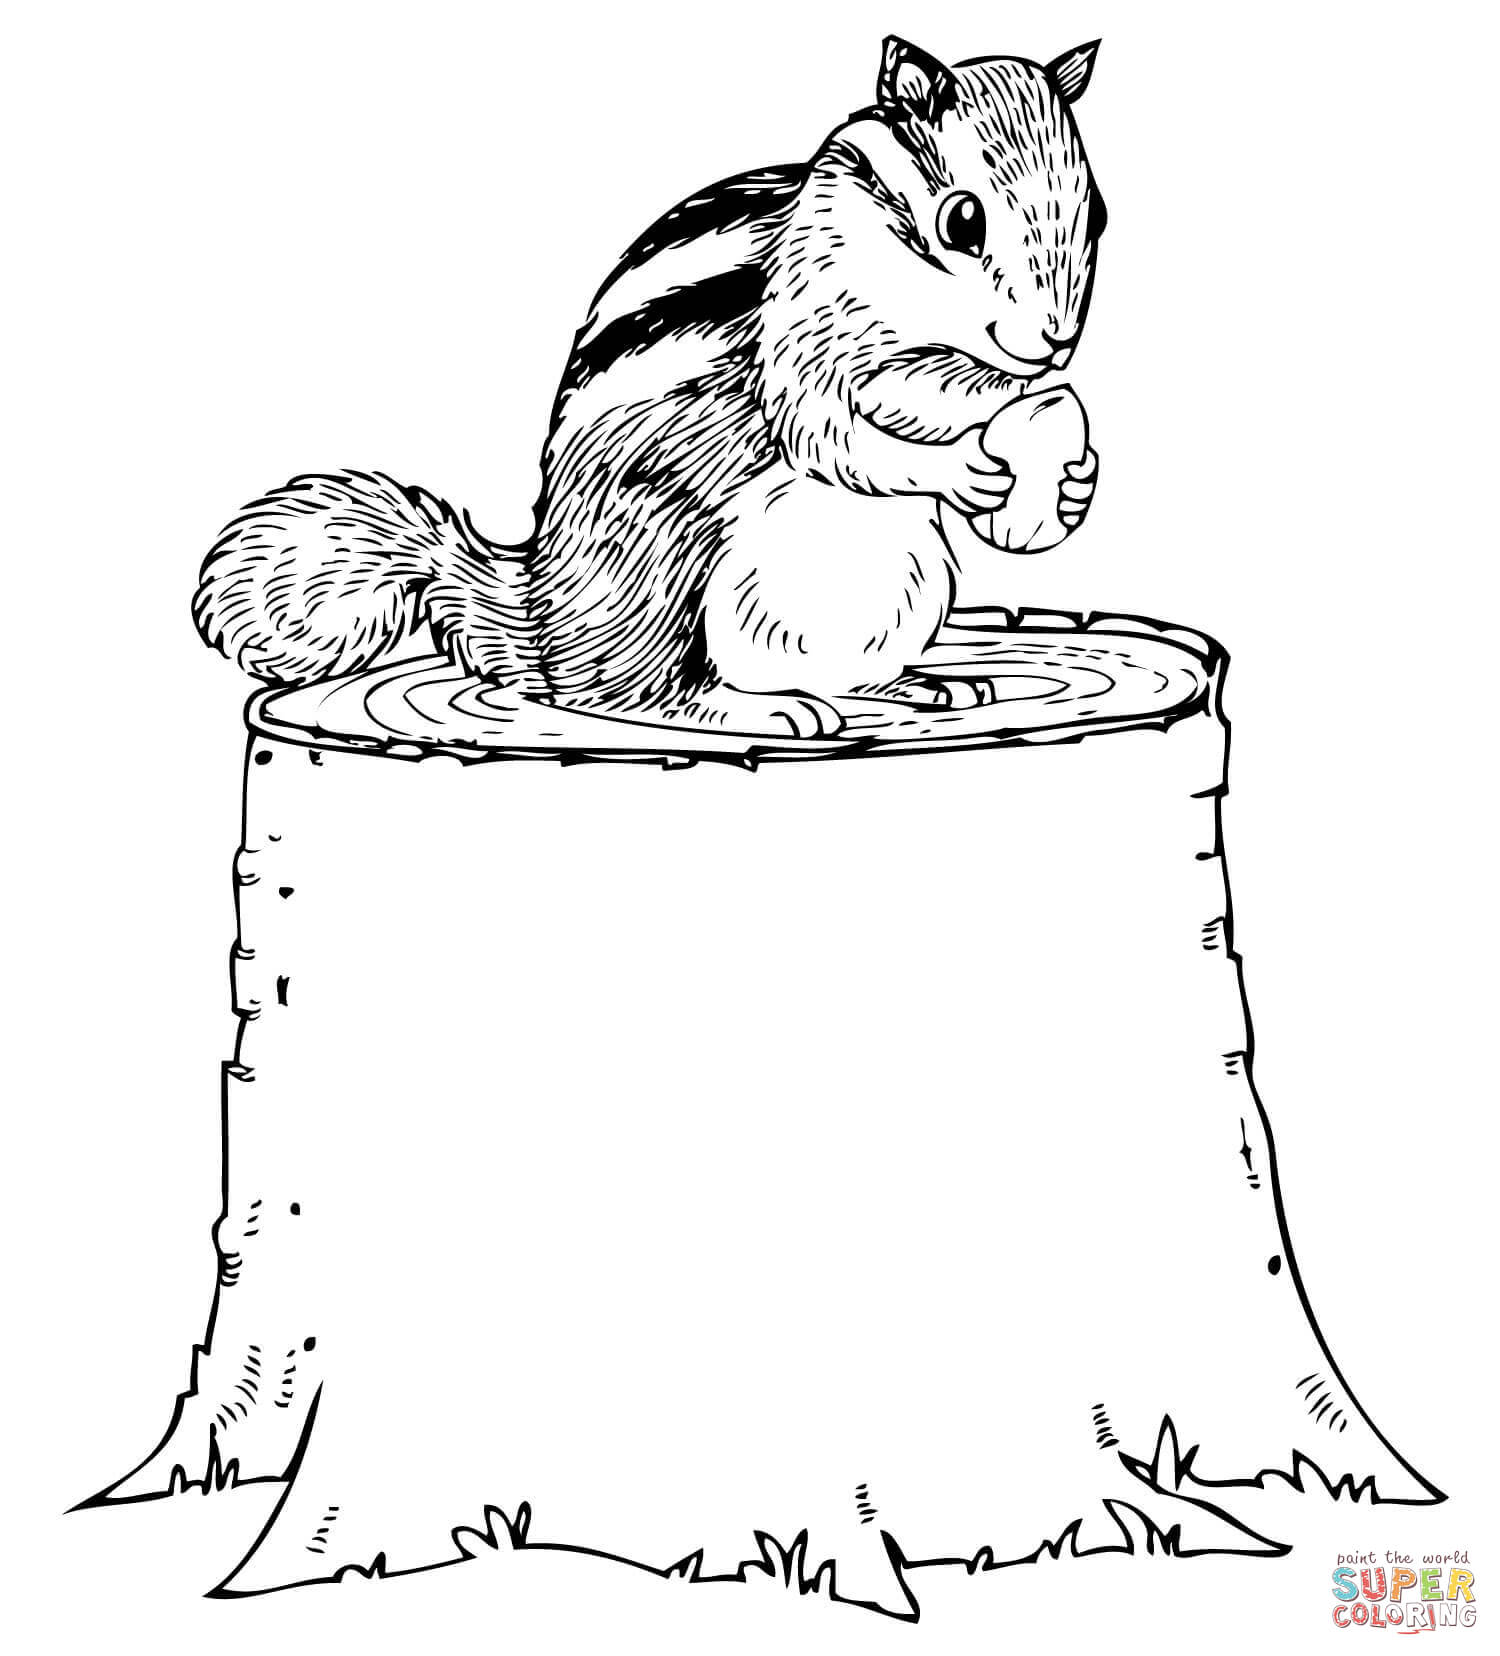 Chipmunk Eating Nut On Tree Stump Coloring Page